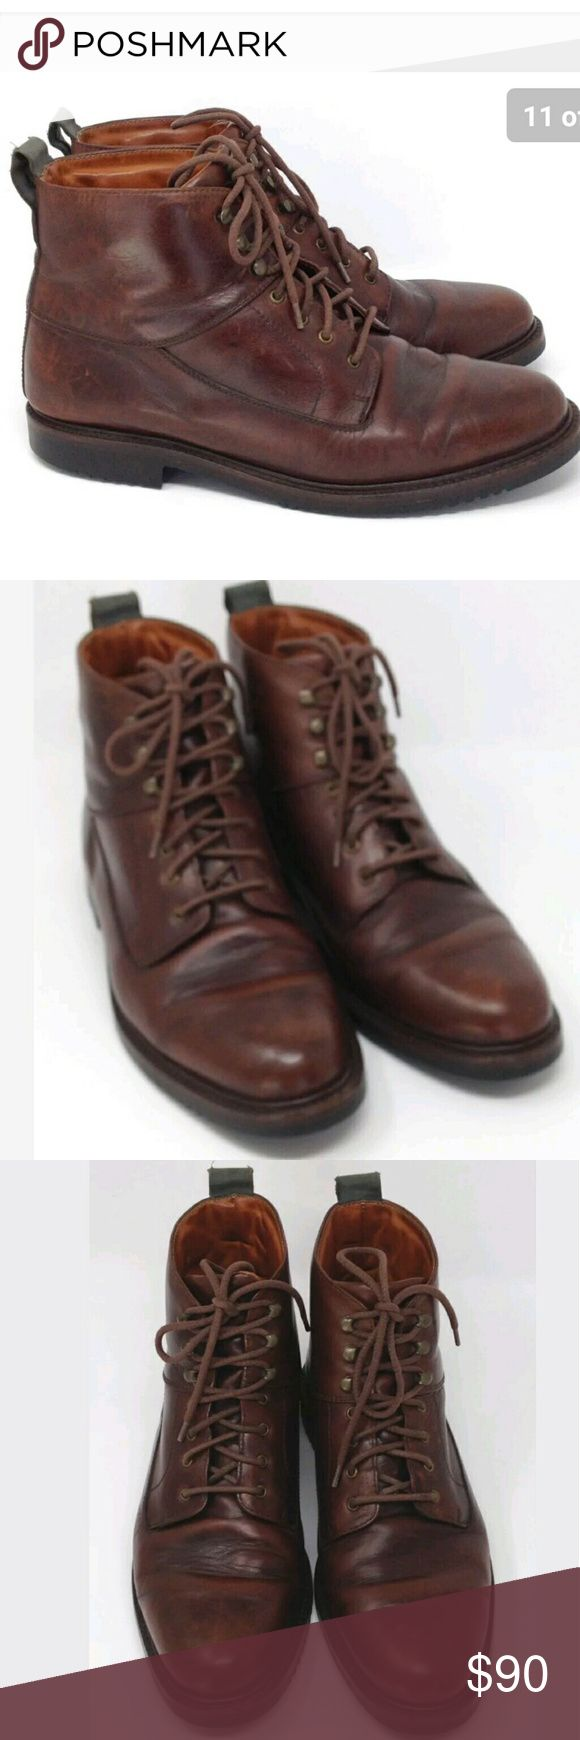 Cole Haan Brown Leather Ankle Boots US 10 Cole Haan Ankle Boots Mens Brown Leather Business Dress Casual Chukka Mid Size US10 M / EU 44 / UK 9.5 - Excellent preowned condition, Cleaned, polished, and ready to wear.    Type: Shoes Style: Ankle Boots Business Dress Casual Chukka Mid  Brand: Cole Haan Size: US 10 M / EU 44 / UK 9.5 Material: Leather Color: Brown Condition: Excellent preowned condition, Cleaned, polished, and ready to wear.   Country of Manufacturer: Brazil Stock Number: Cole…